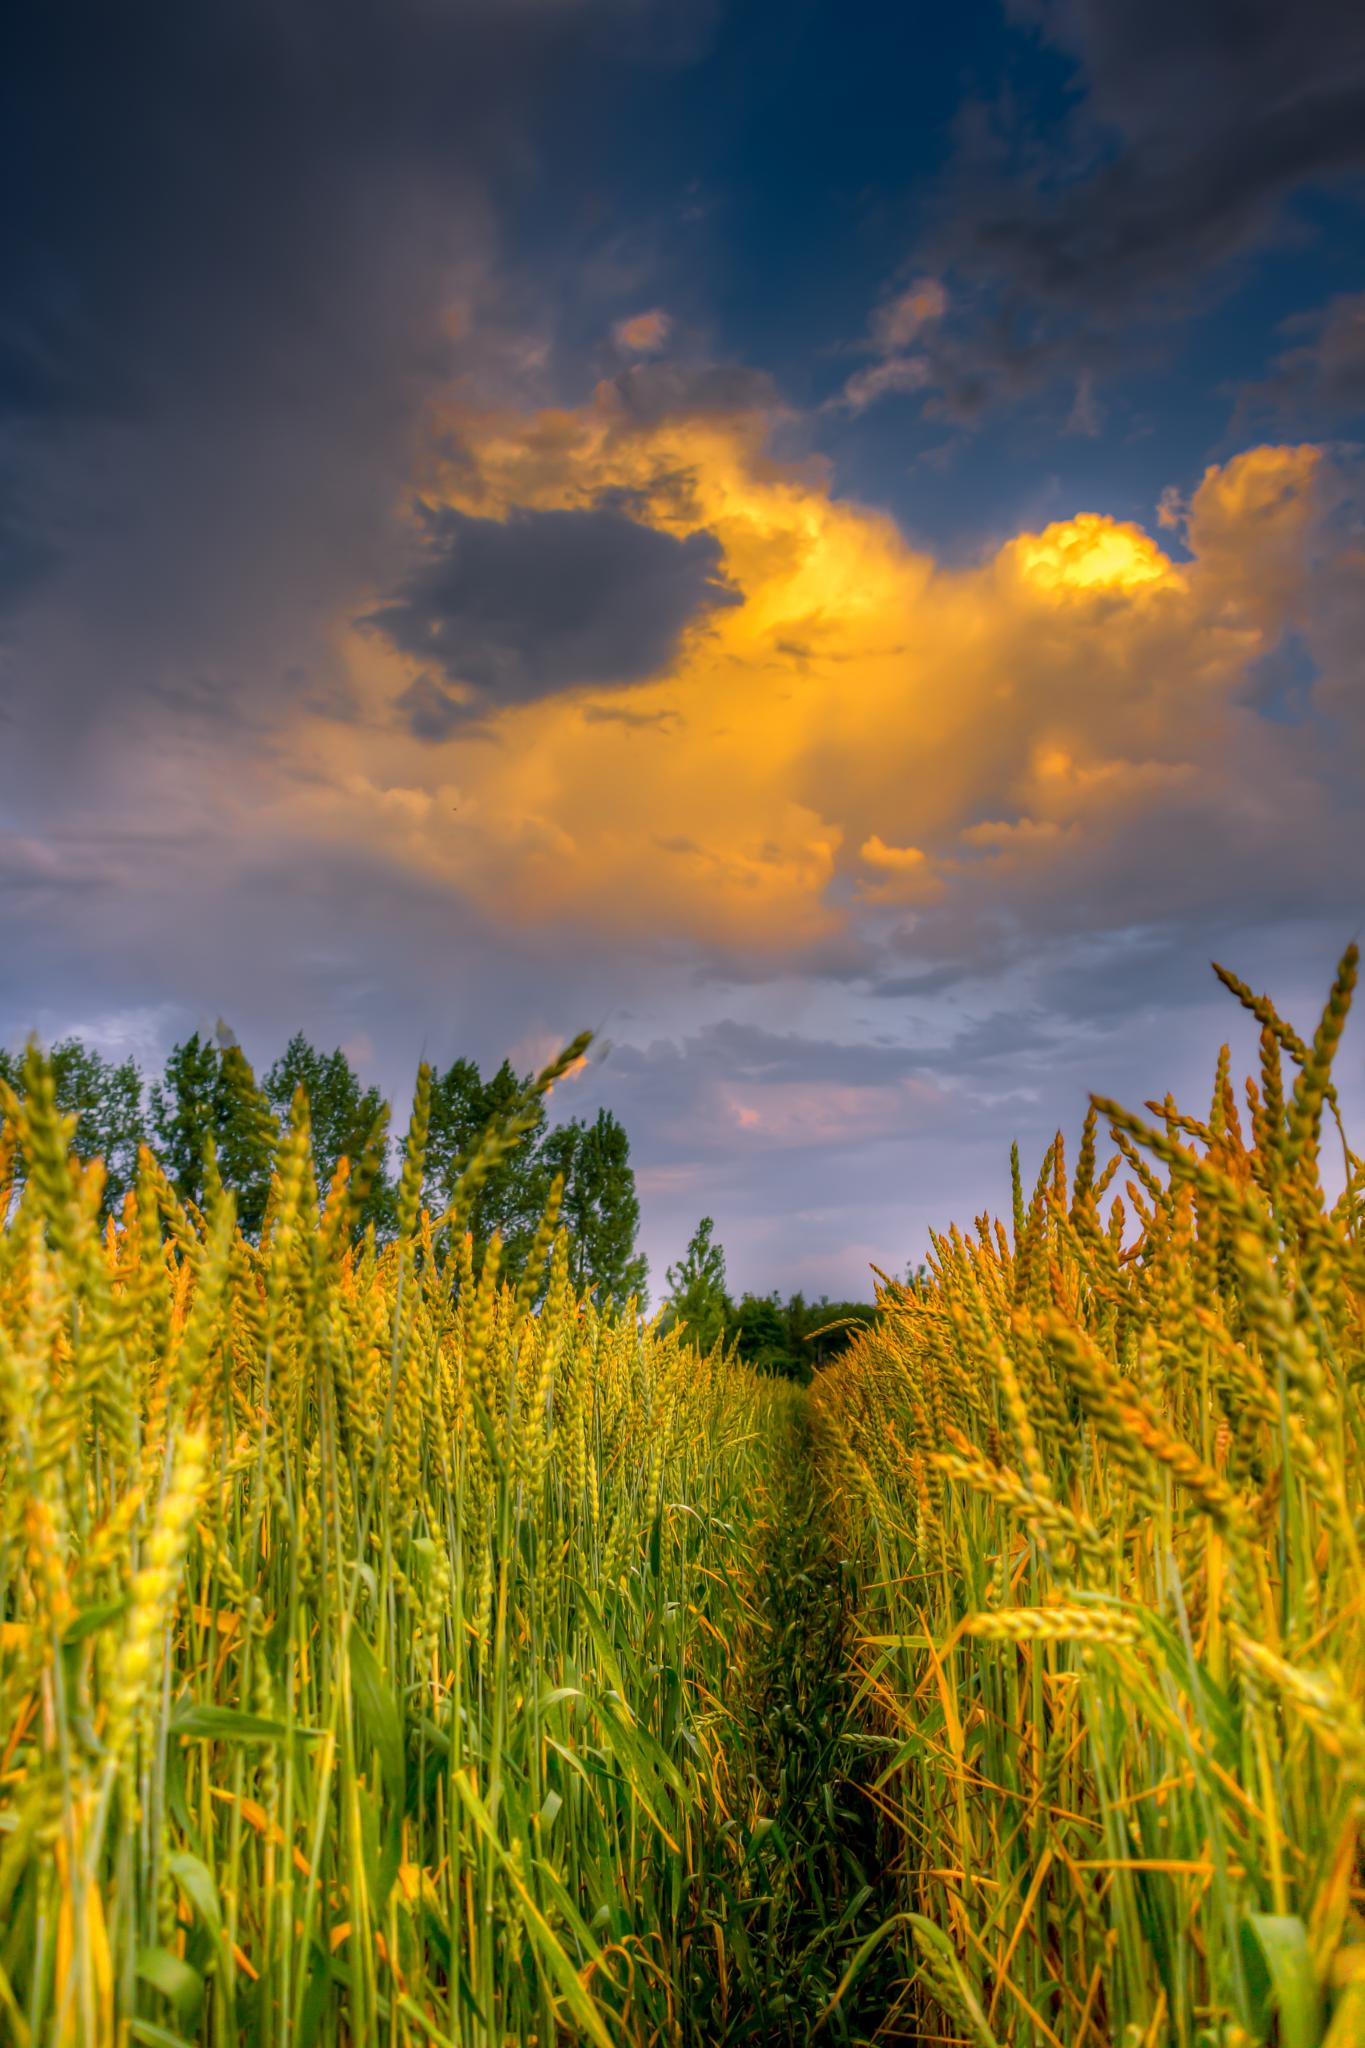 corn and clouds by matthewlawes123